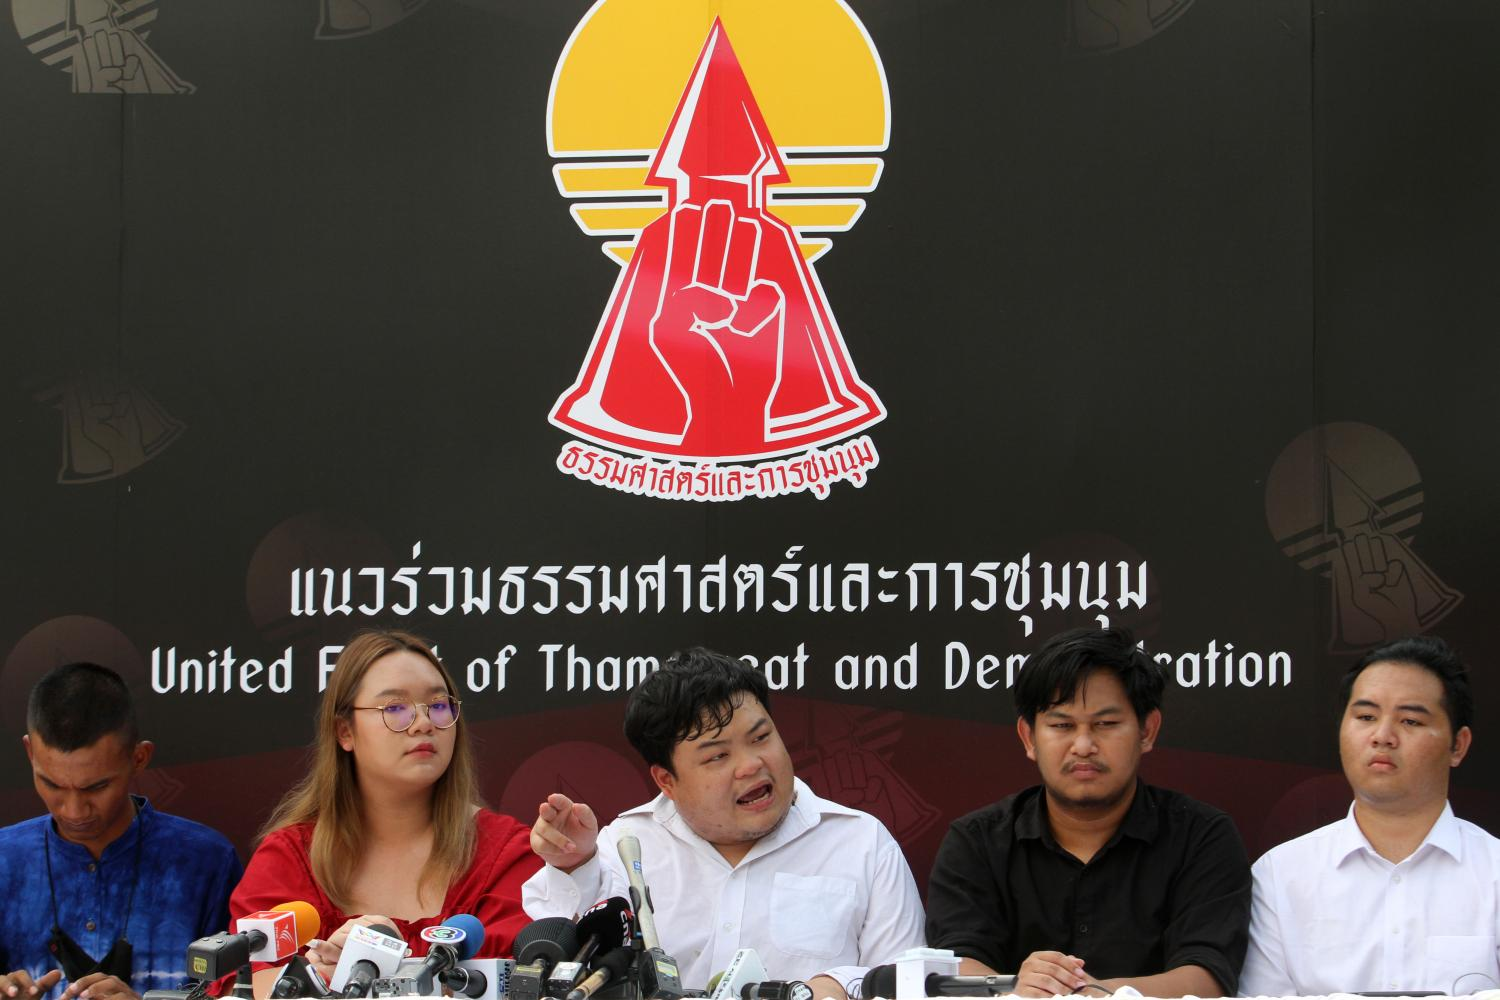 Student activist Parit Chiwarak, centre, speaks at a press conference ahead of next Saturday's rally planned for Thammasat University's Tha Prachan campus. Wichan Charoenkiatpakul